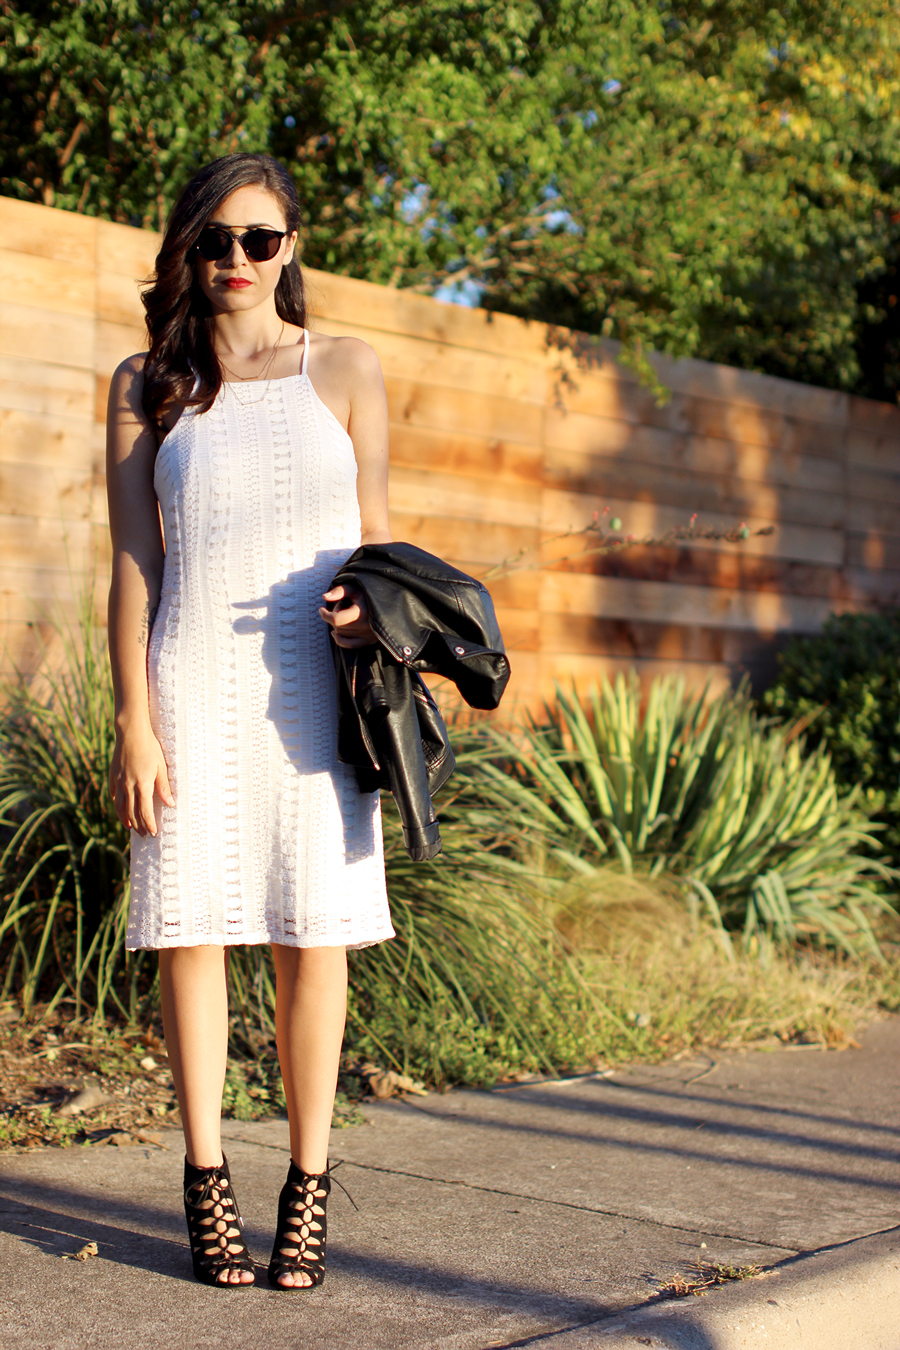 FIXIN-TO-THRILL-WHITE-HALTER-DRESS-STRAPPY-HEELS-LEATHER-TREND-FALL-OCTOBER-ATX-AUSTIN-STYLE-BLOG-FW15-TRENDY-CHIC-GLAM-TEXAS-5